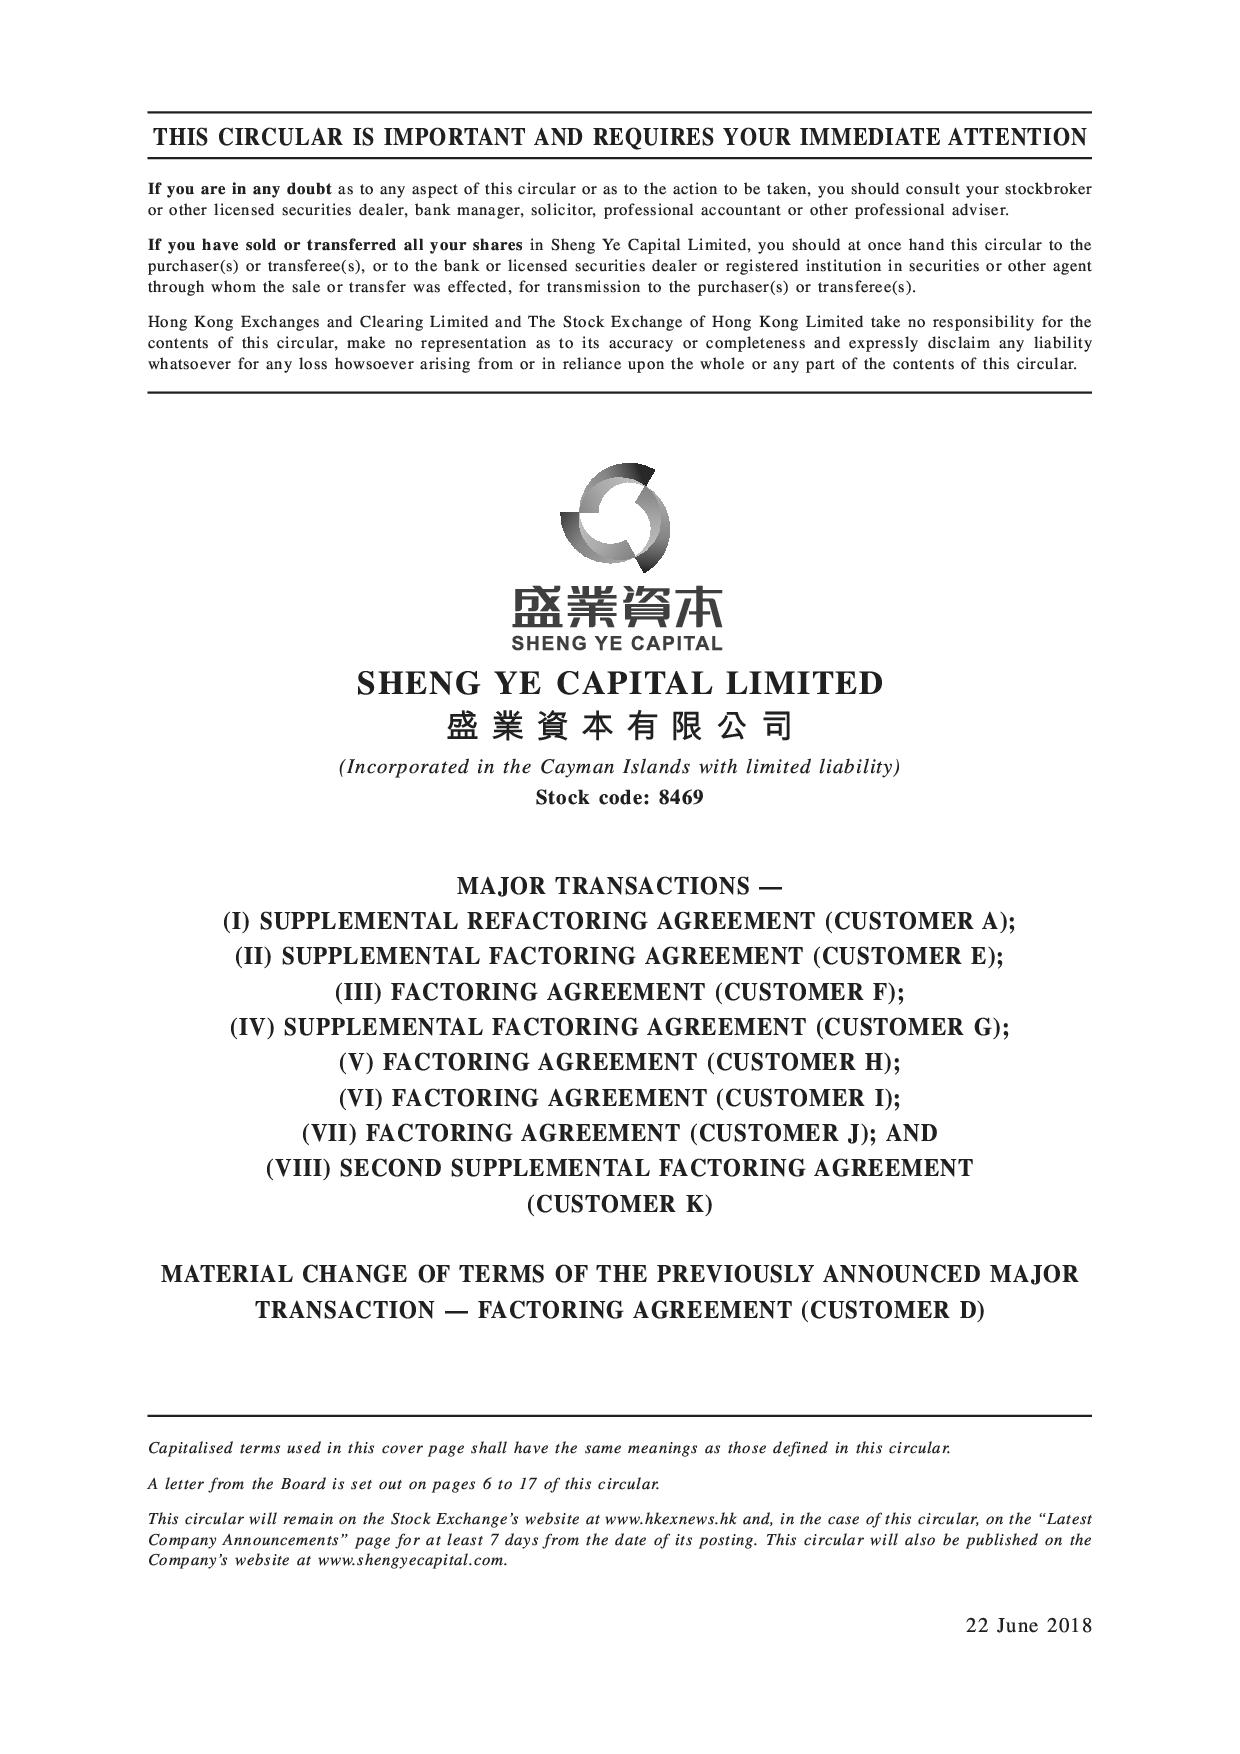 Sheng Ye Capital Limited